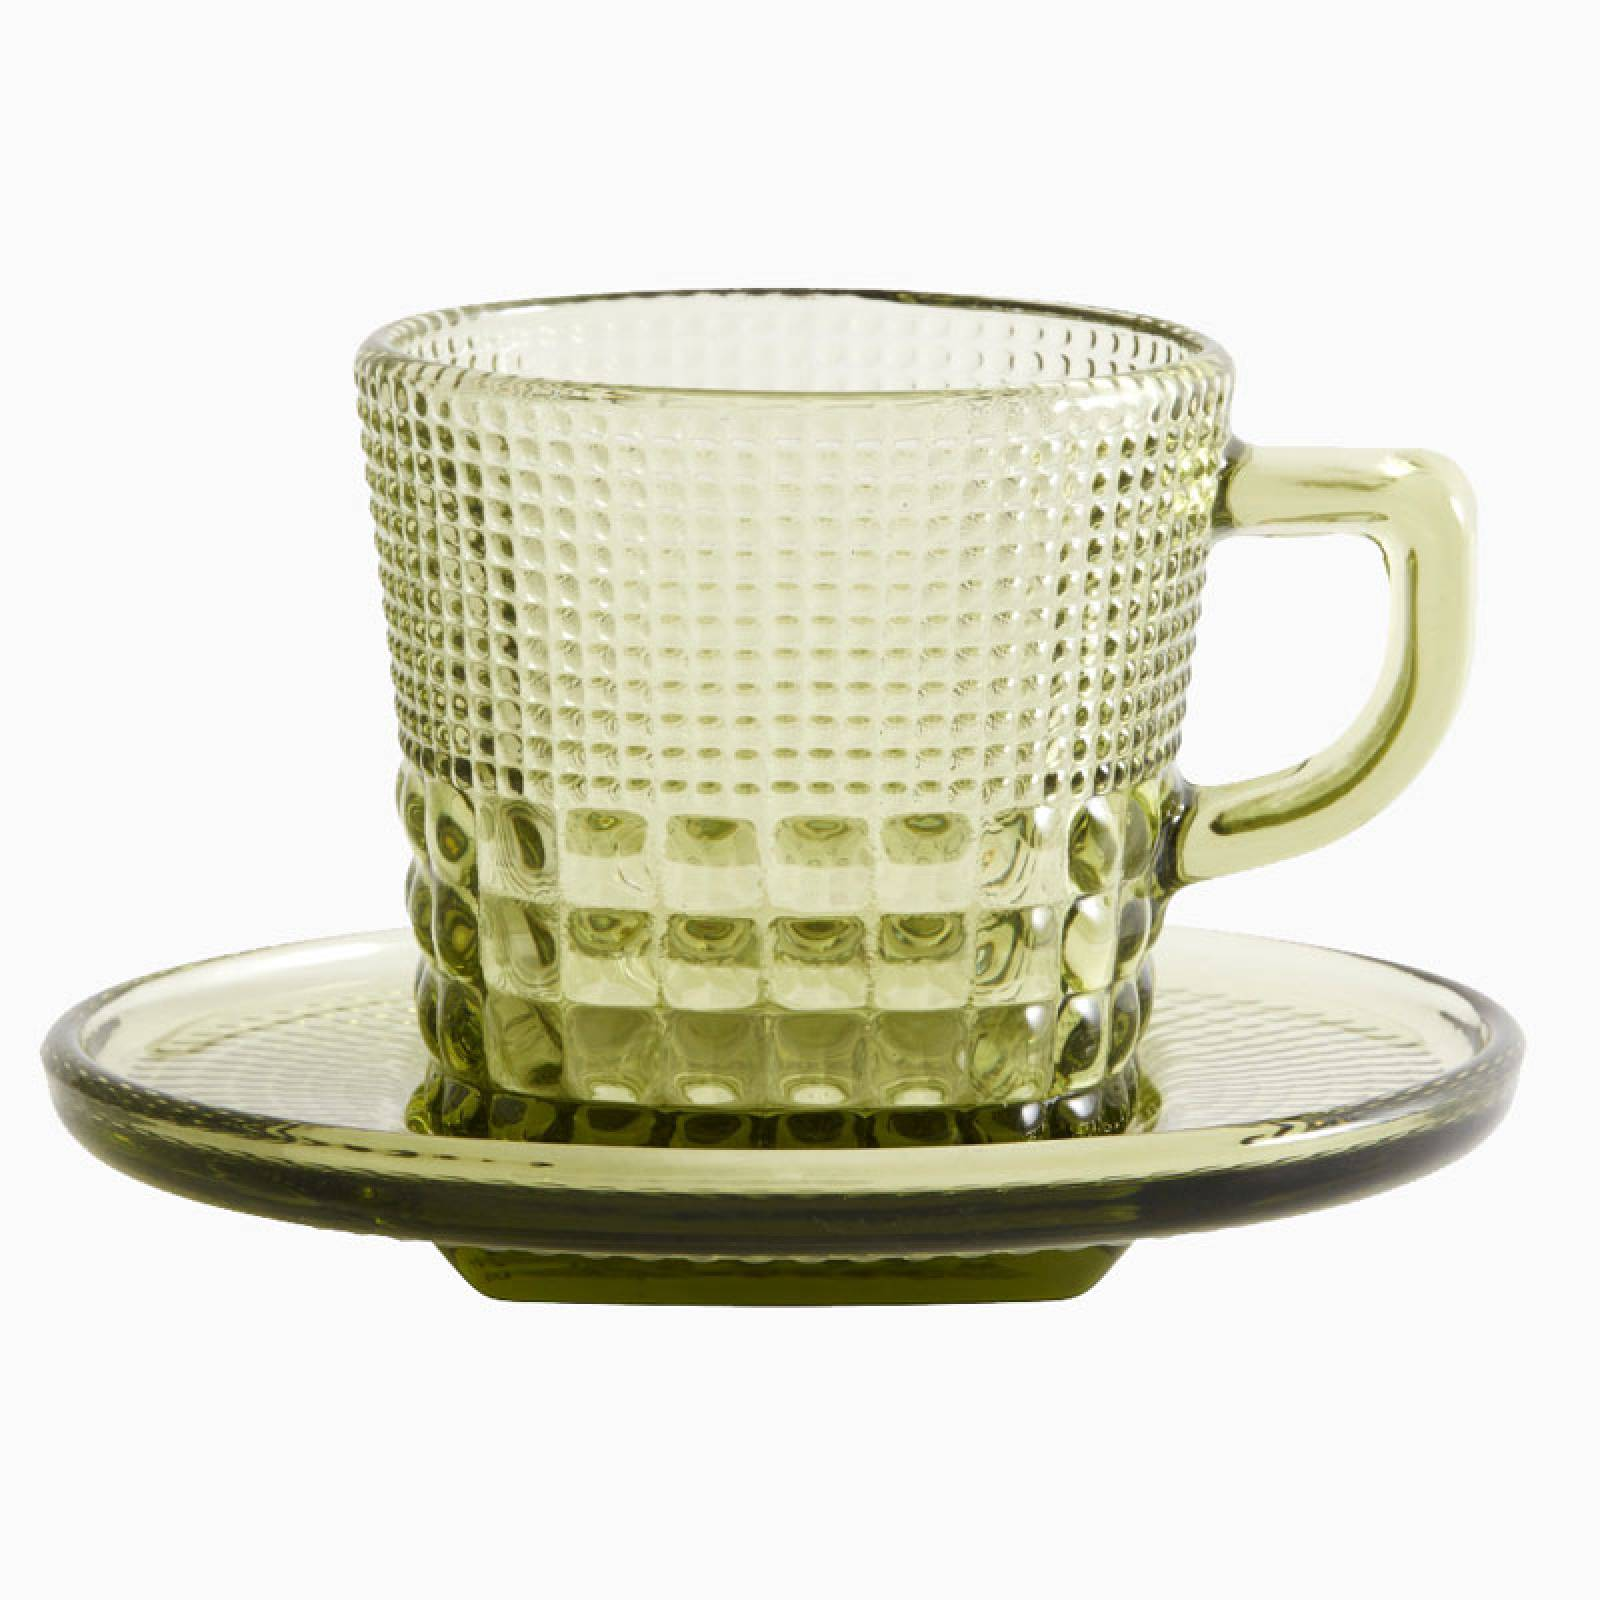 Textured Glass Cup And Saucer - Green thumbnails